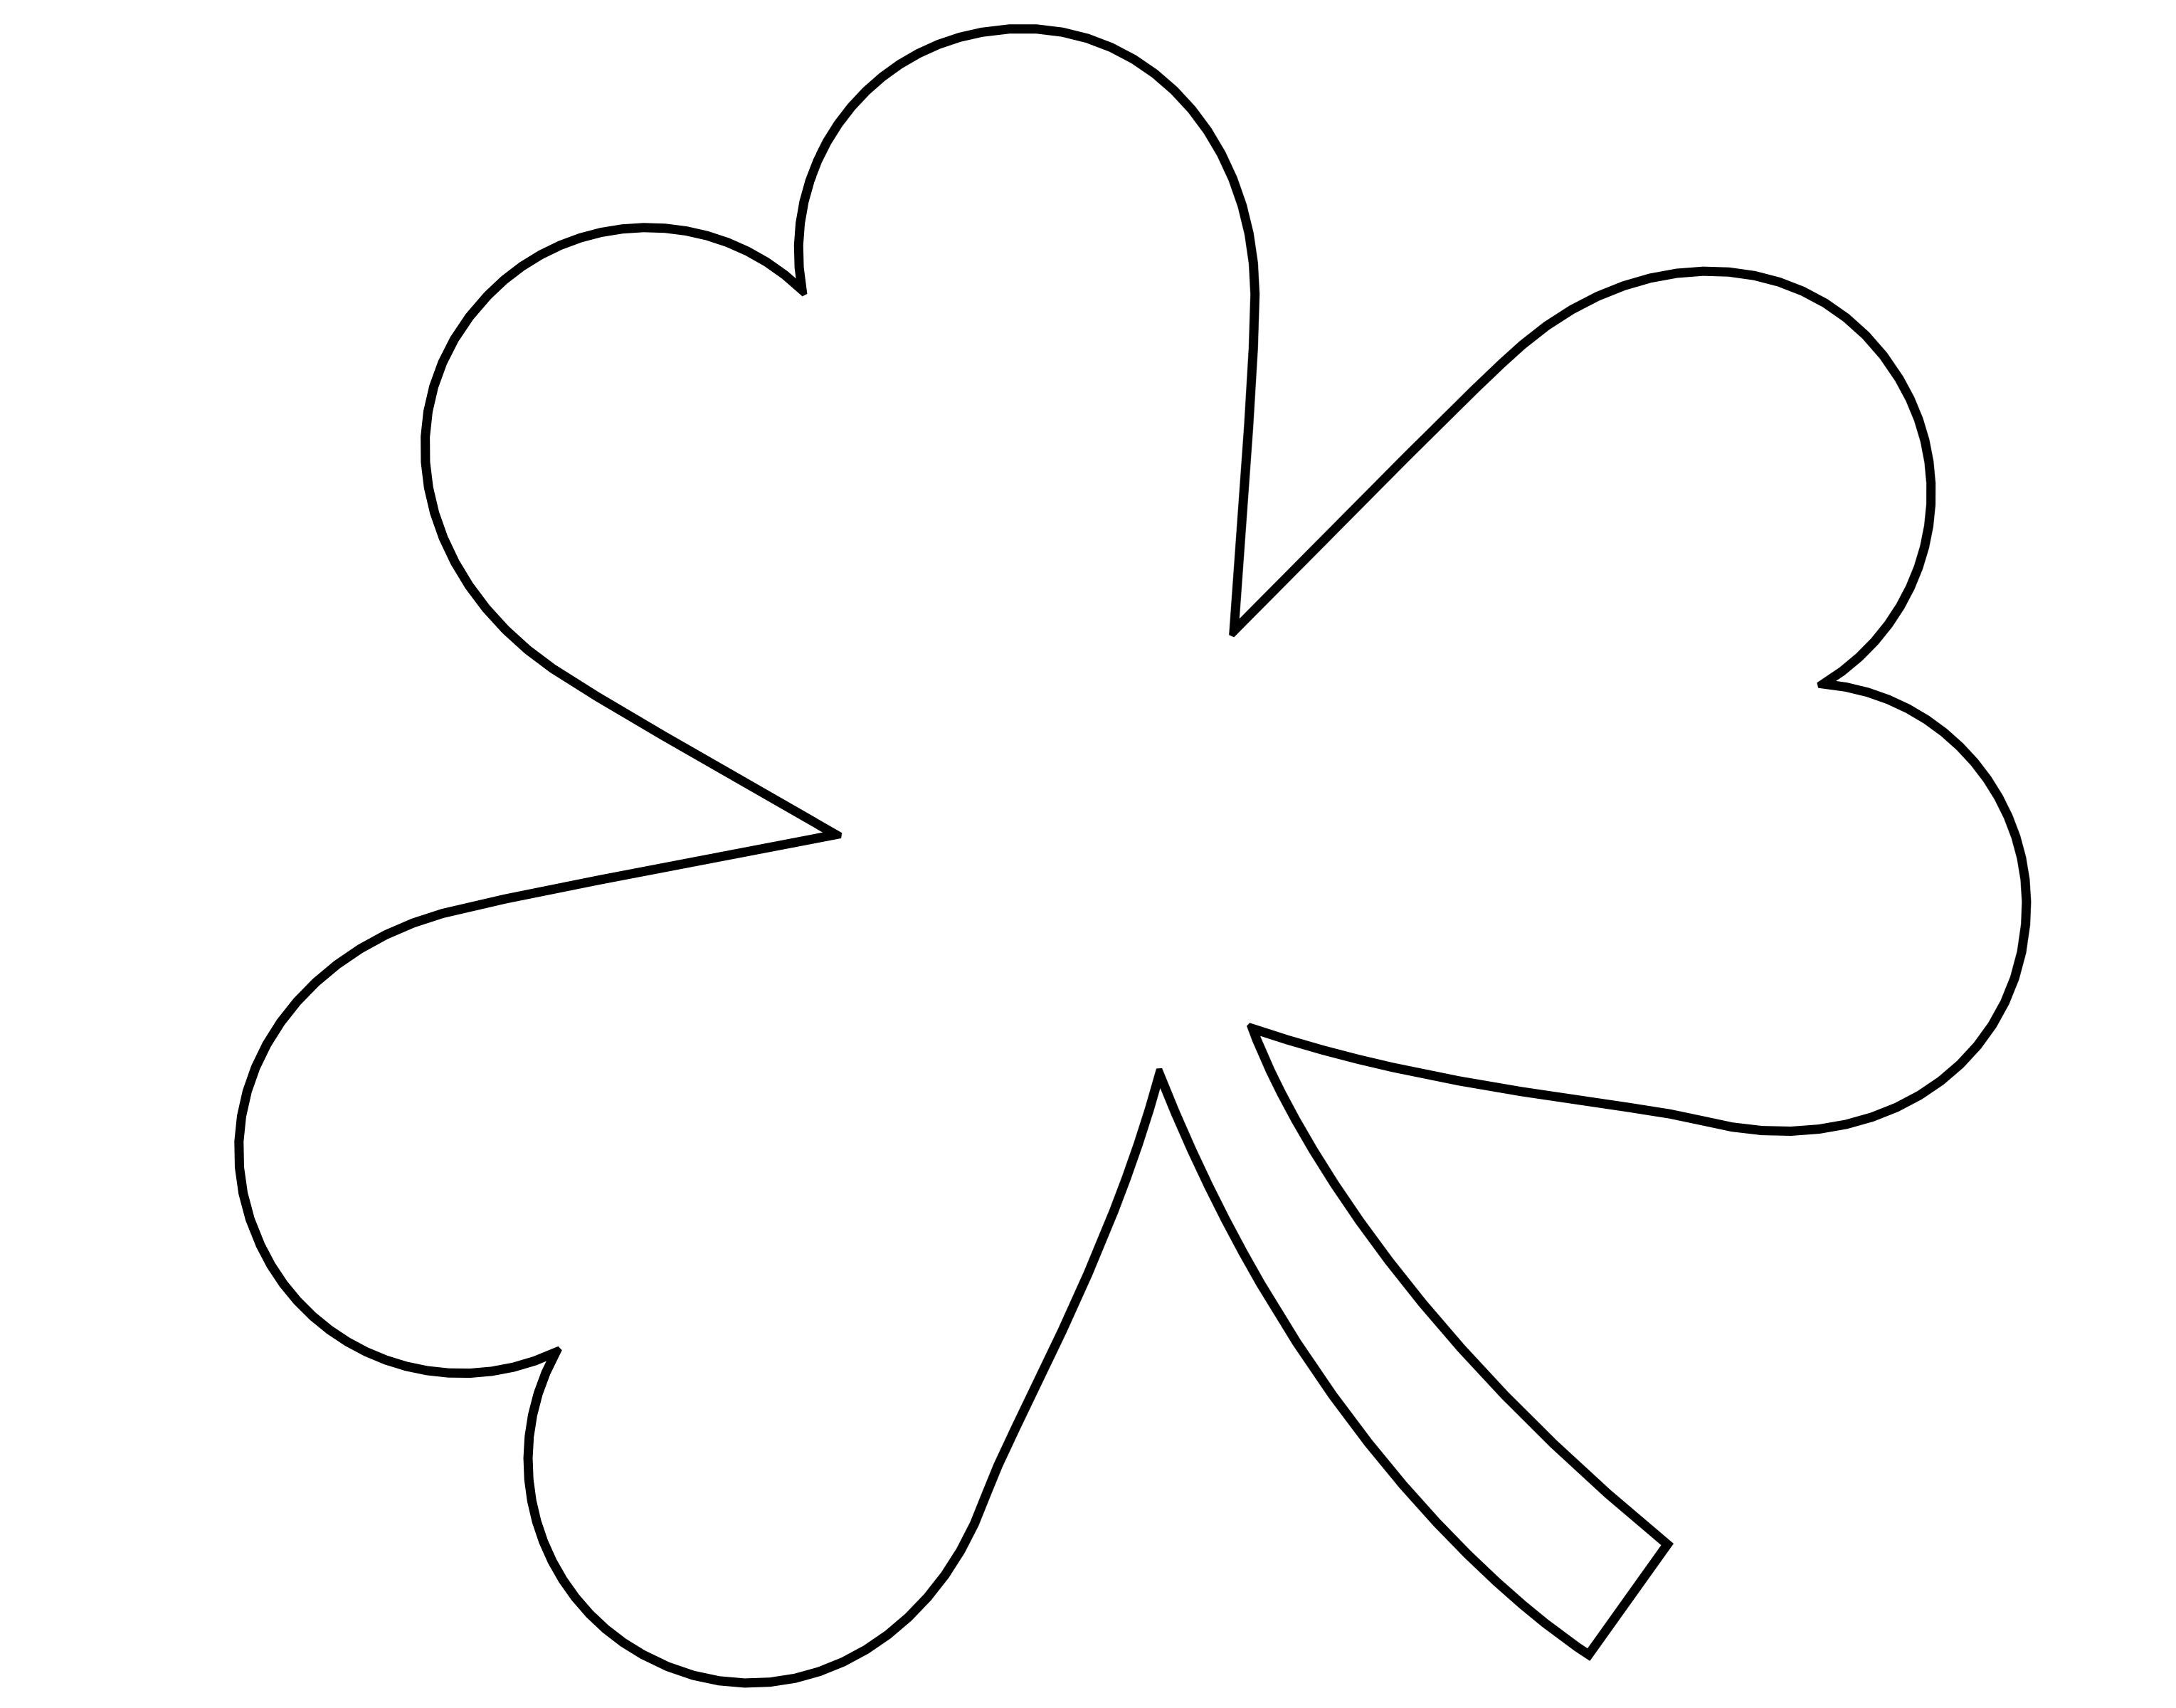 5 Best Images Of Four Leaf Shamrock Template Printable - St - Shamrock Template Free Printable